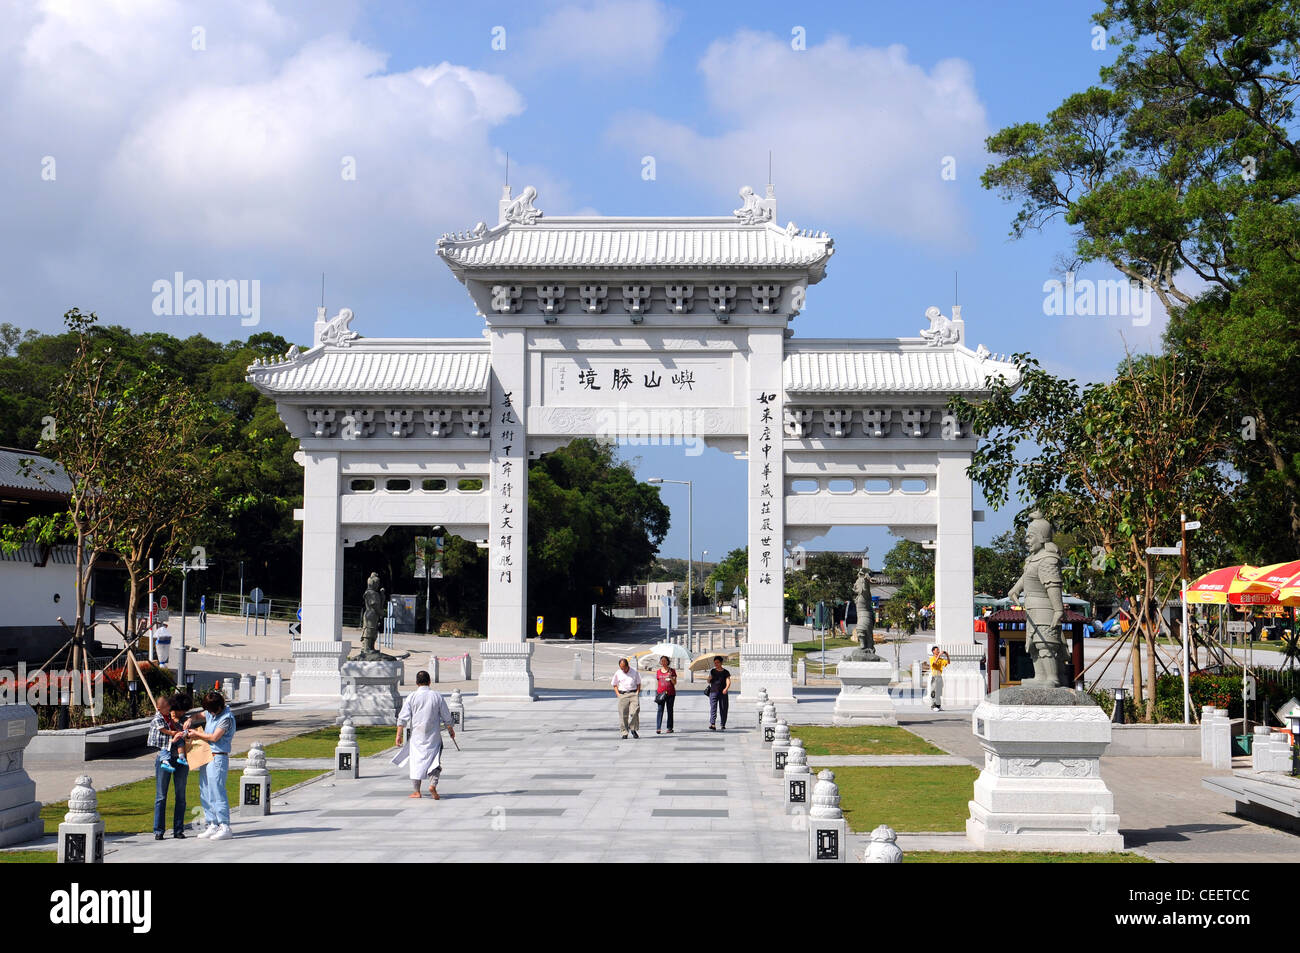 The Po Lin Monastery at Lantau at Hongkong is one of the most famous travel destinations. - Stock Image